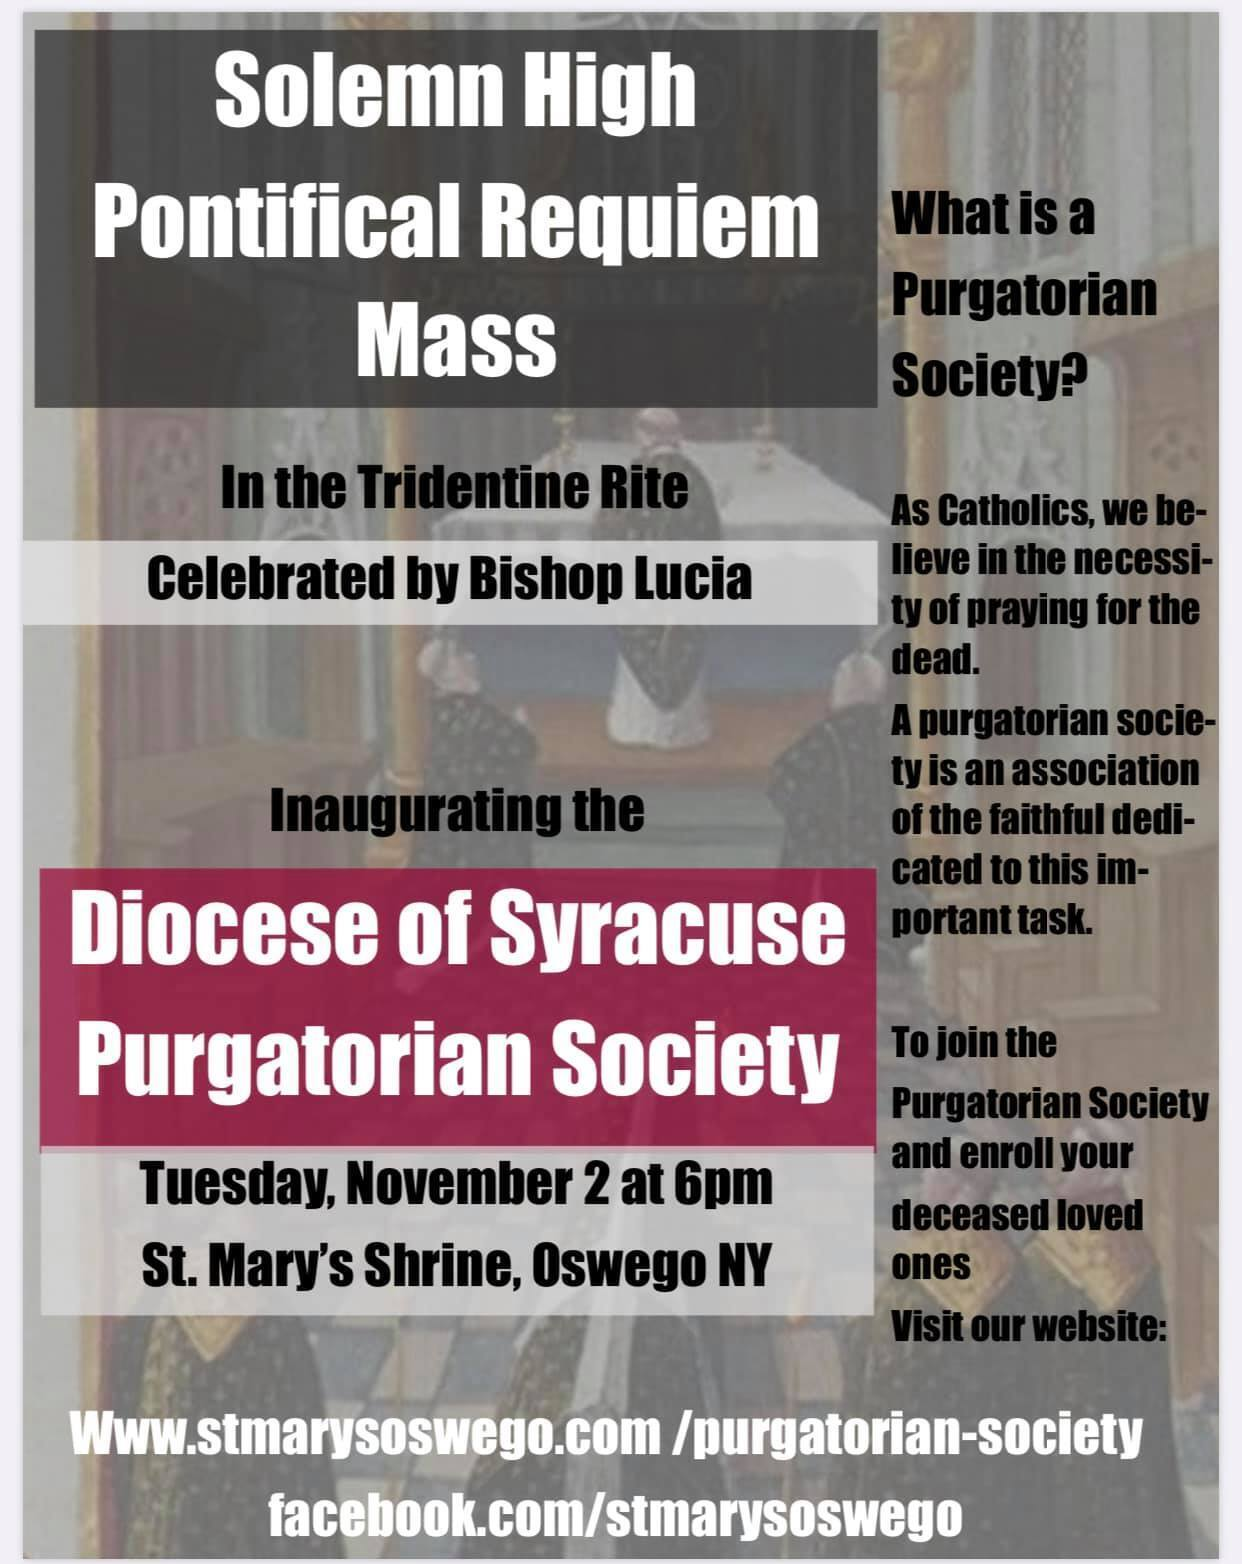 Purgatorian Society. Please click image for more information